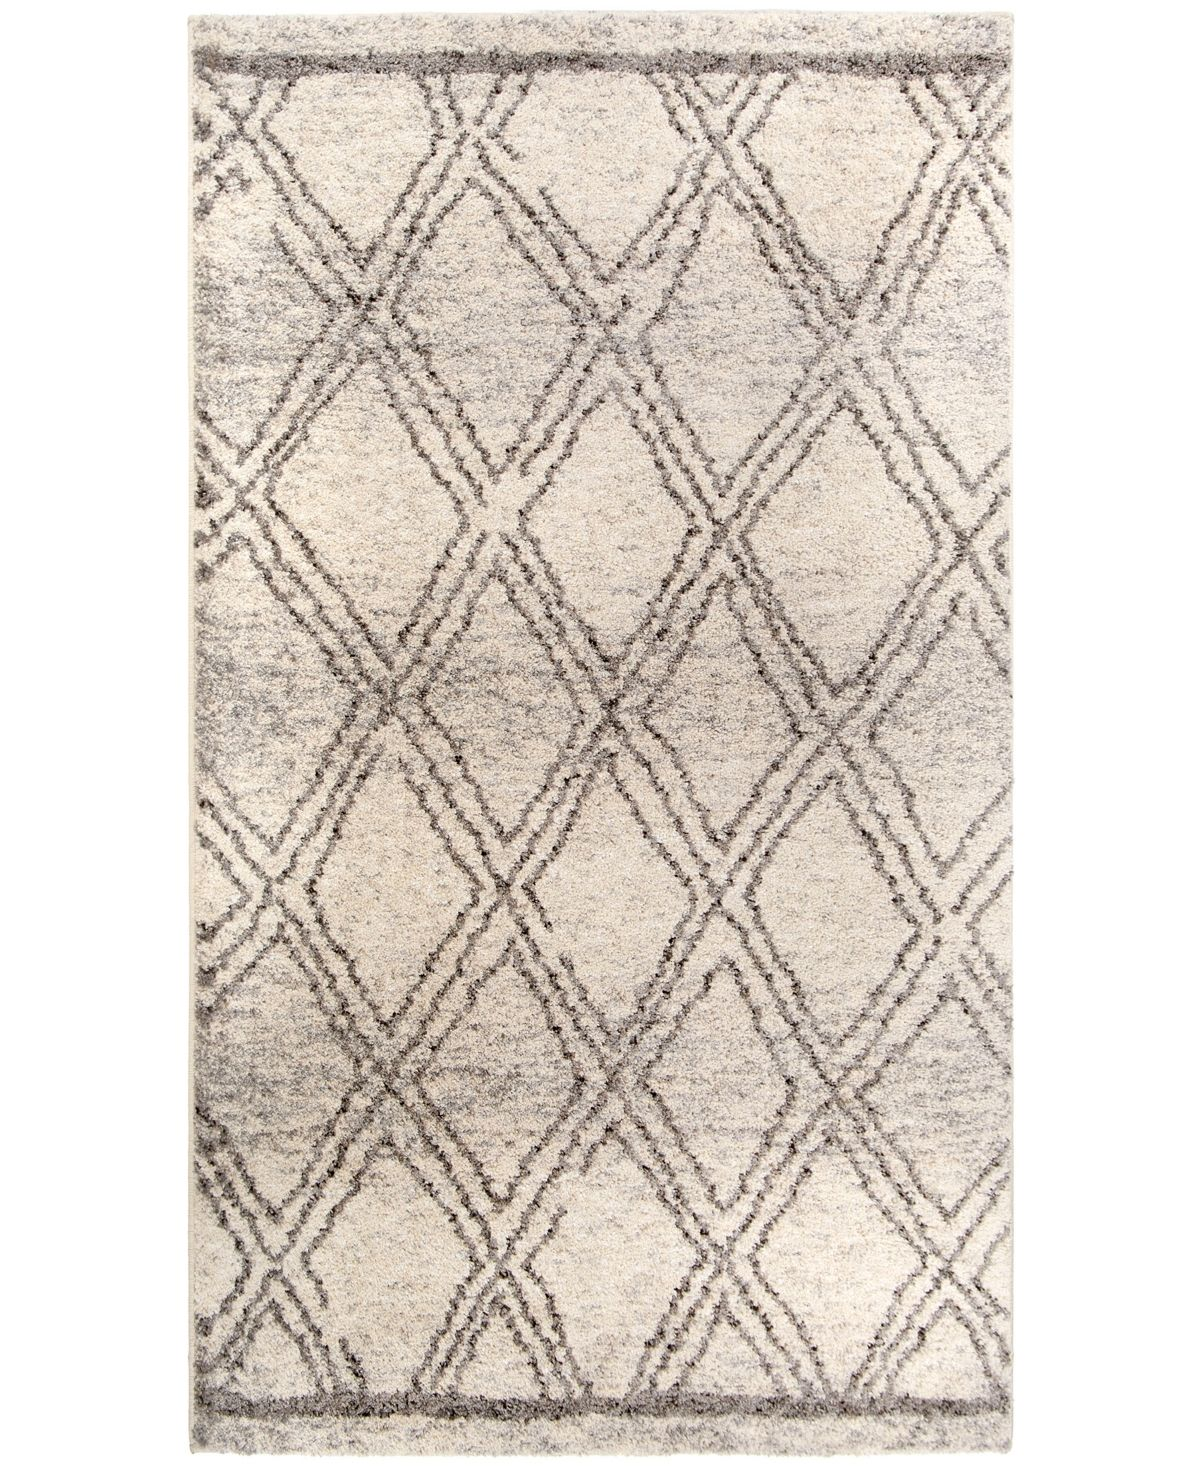 Palmetto Living Casablanca Tribal 05 Multi 7 10 X 10 10 Area Rug